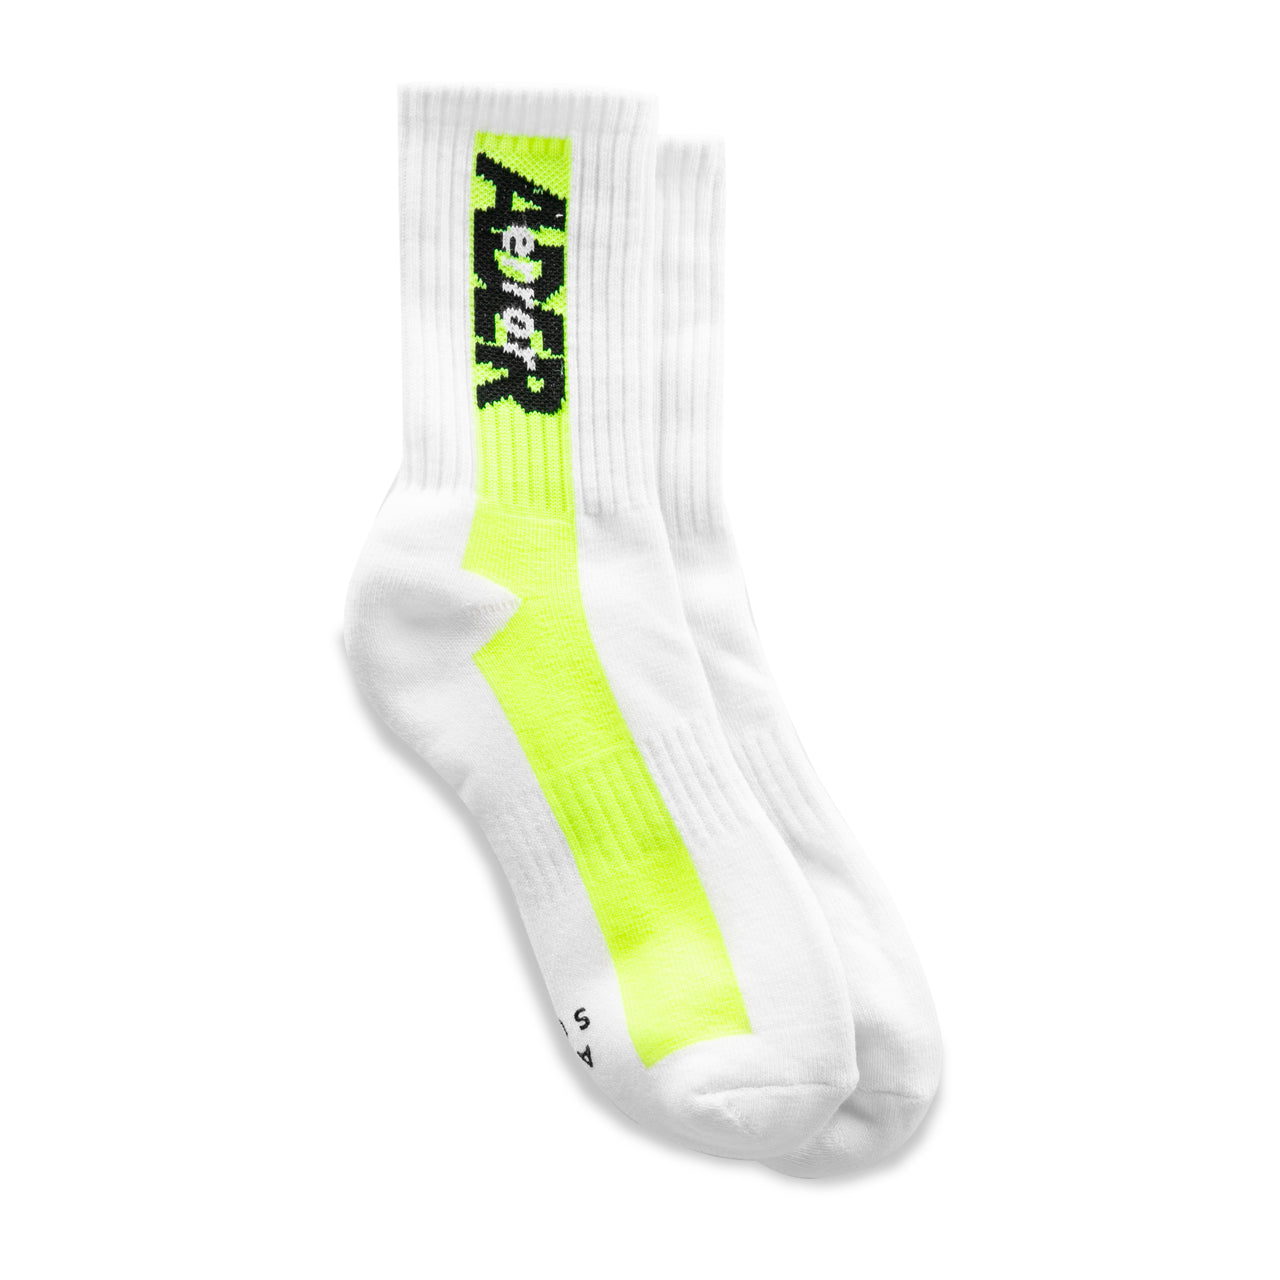 Adererror Line Color Socks - Yellow